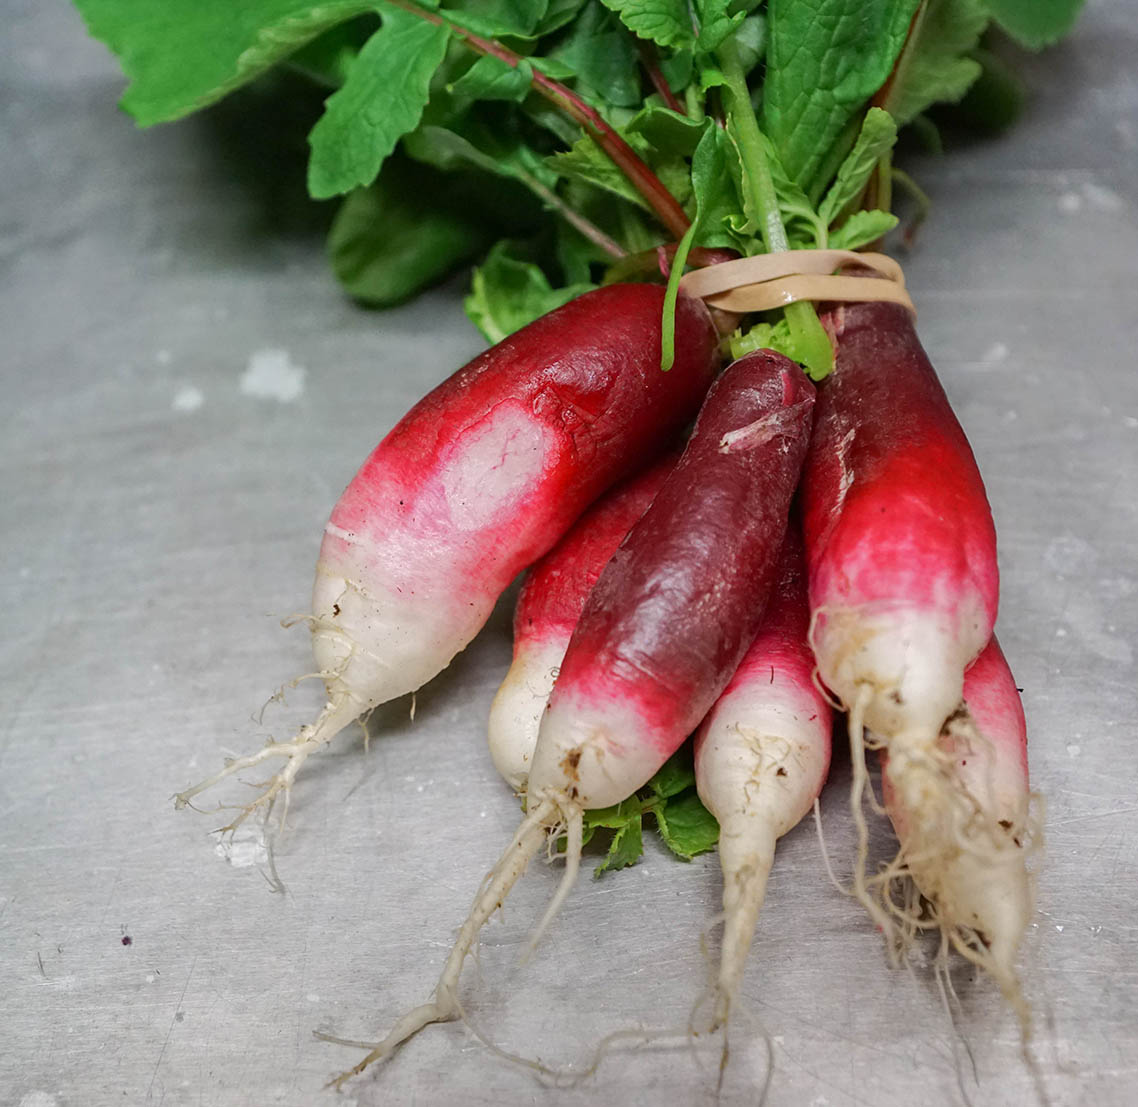 Freight Farm radishes